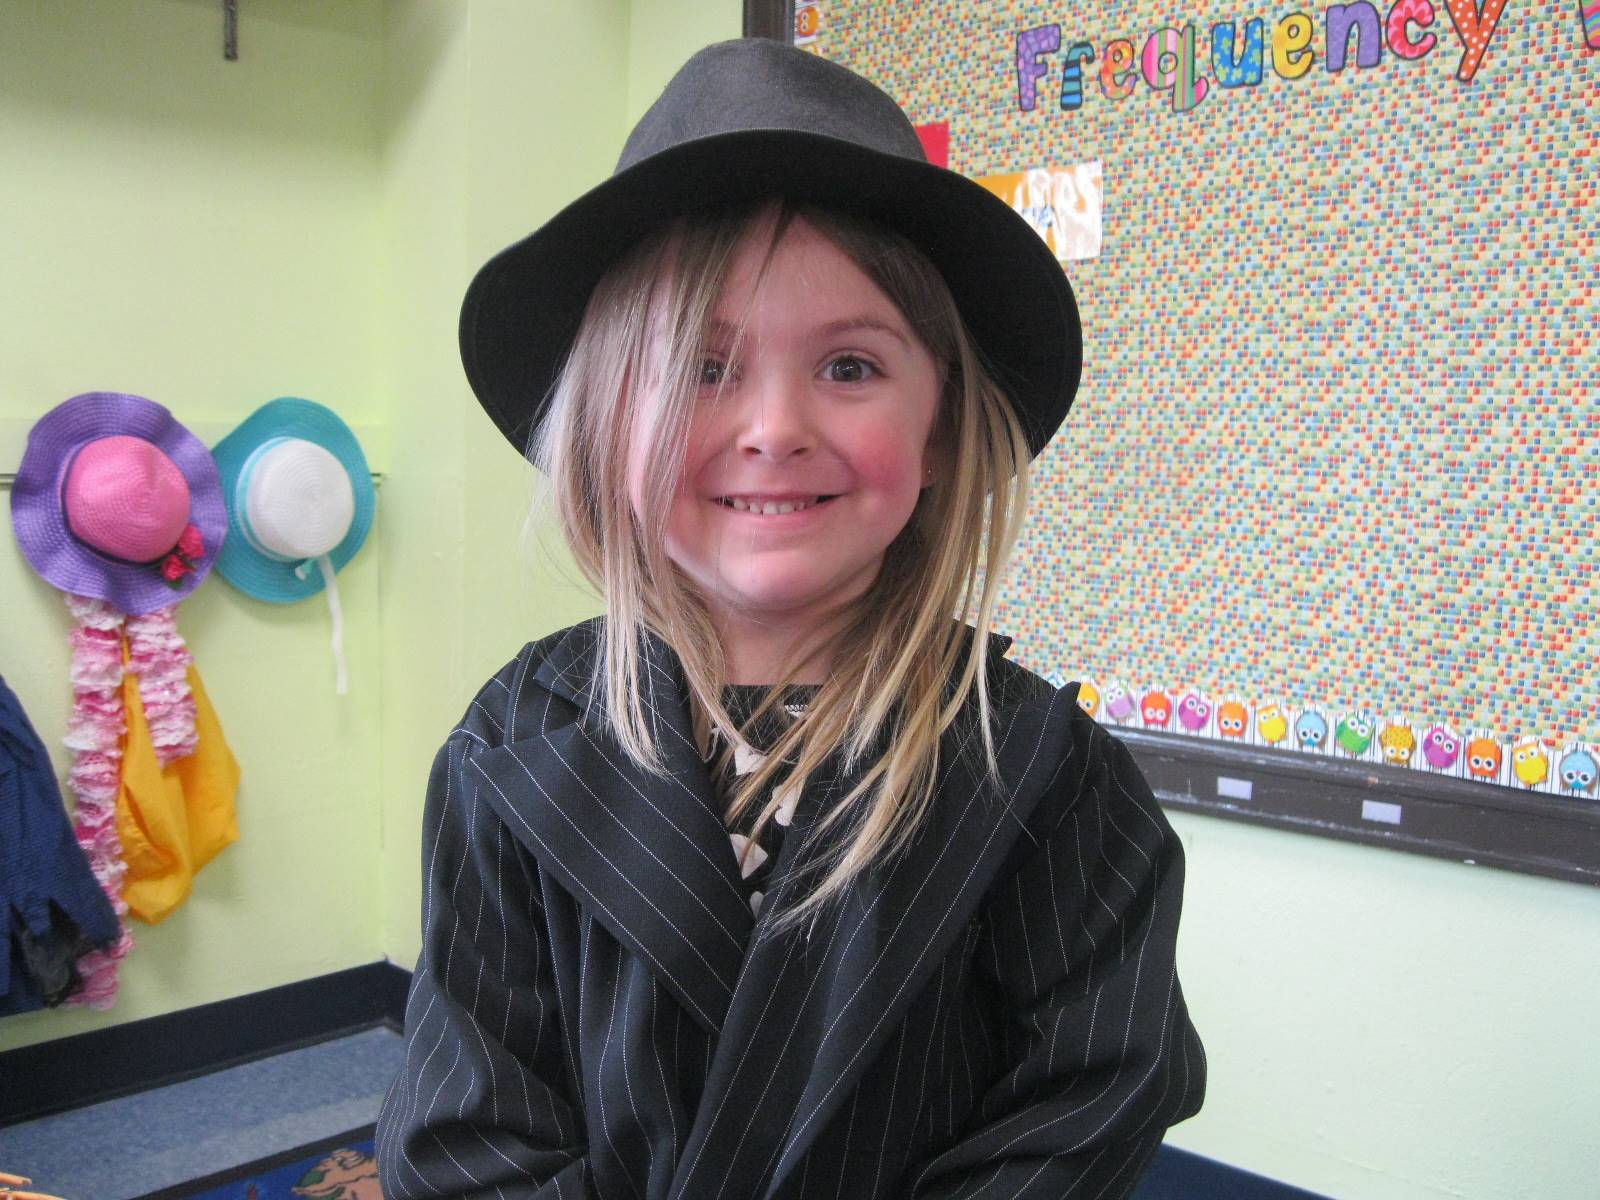 student dressed up as a detective.